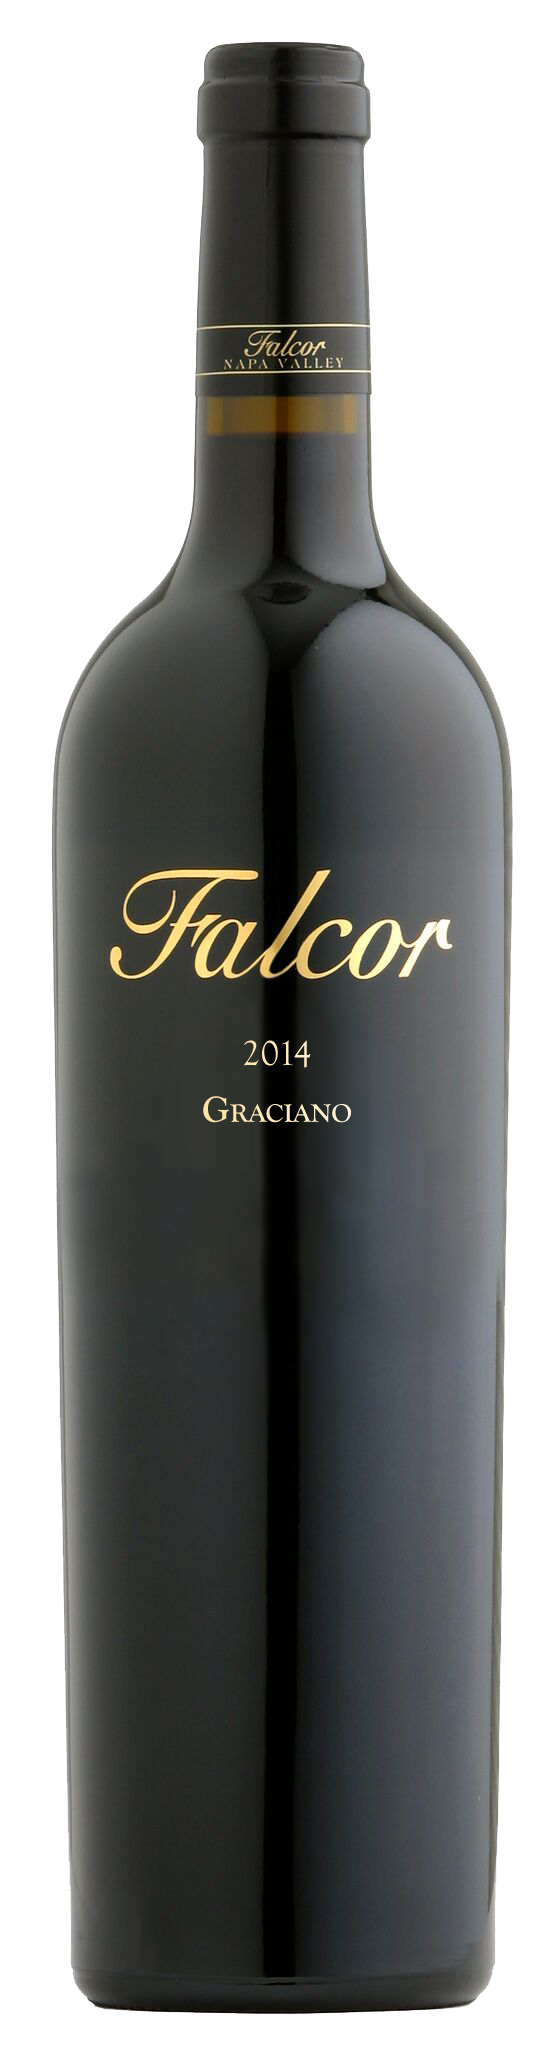 Product Image for 2014 Graciano